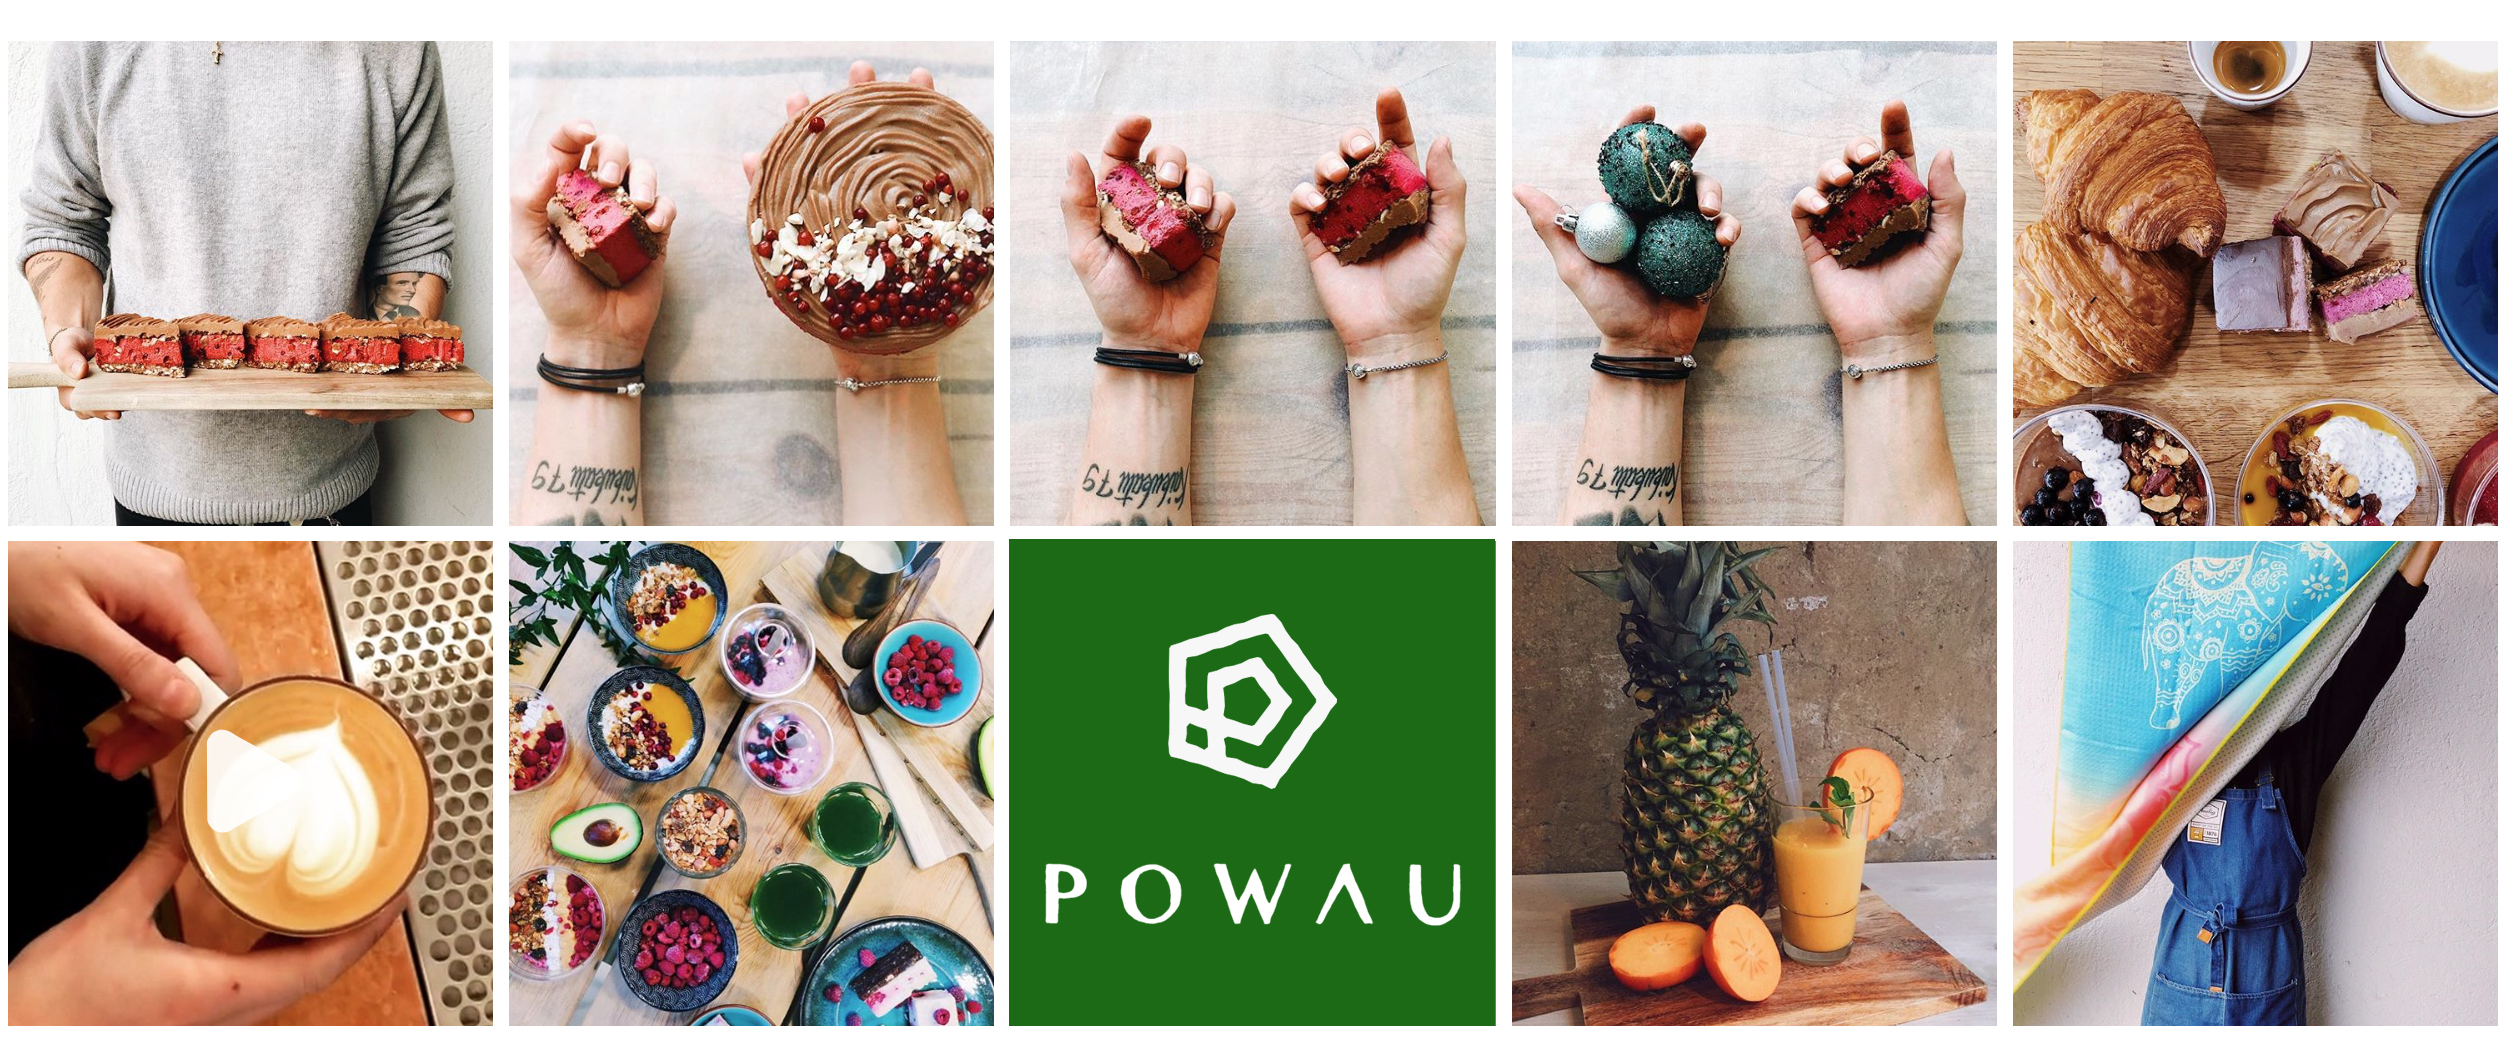 image of POWAU brand/products